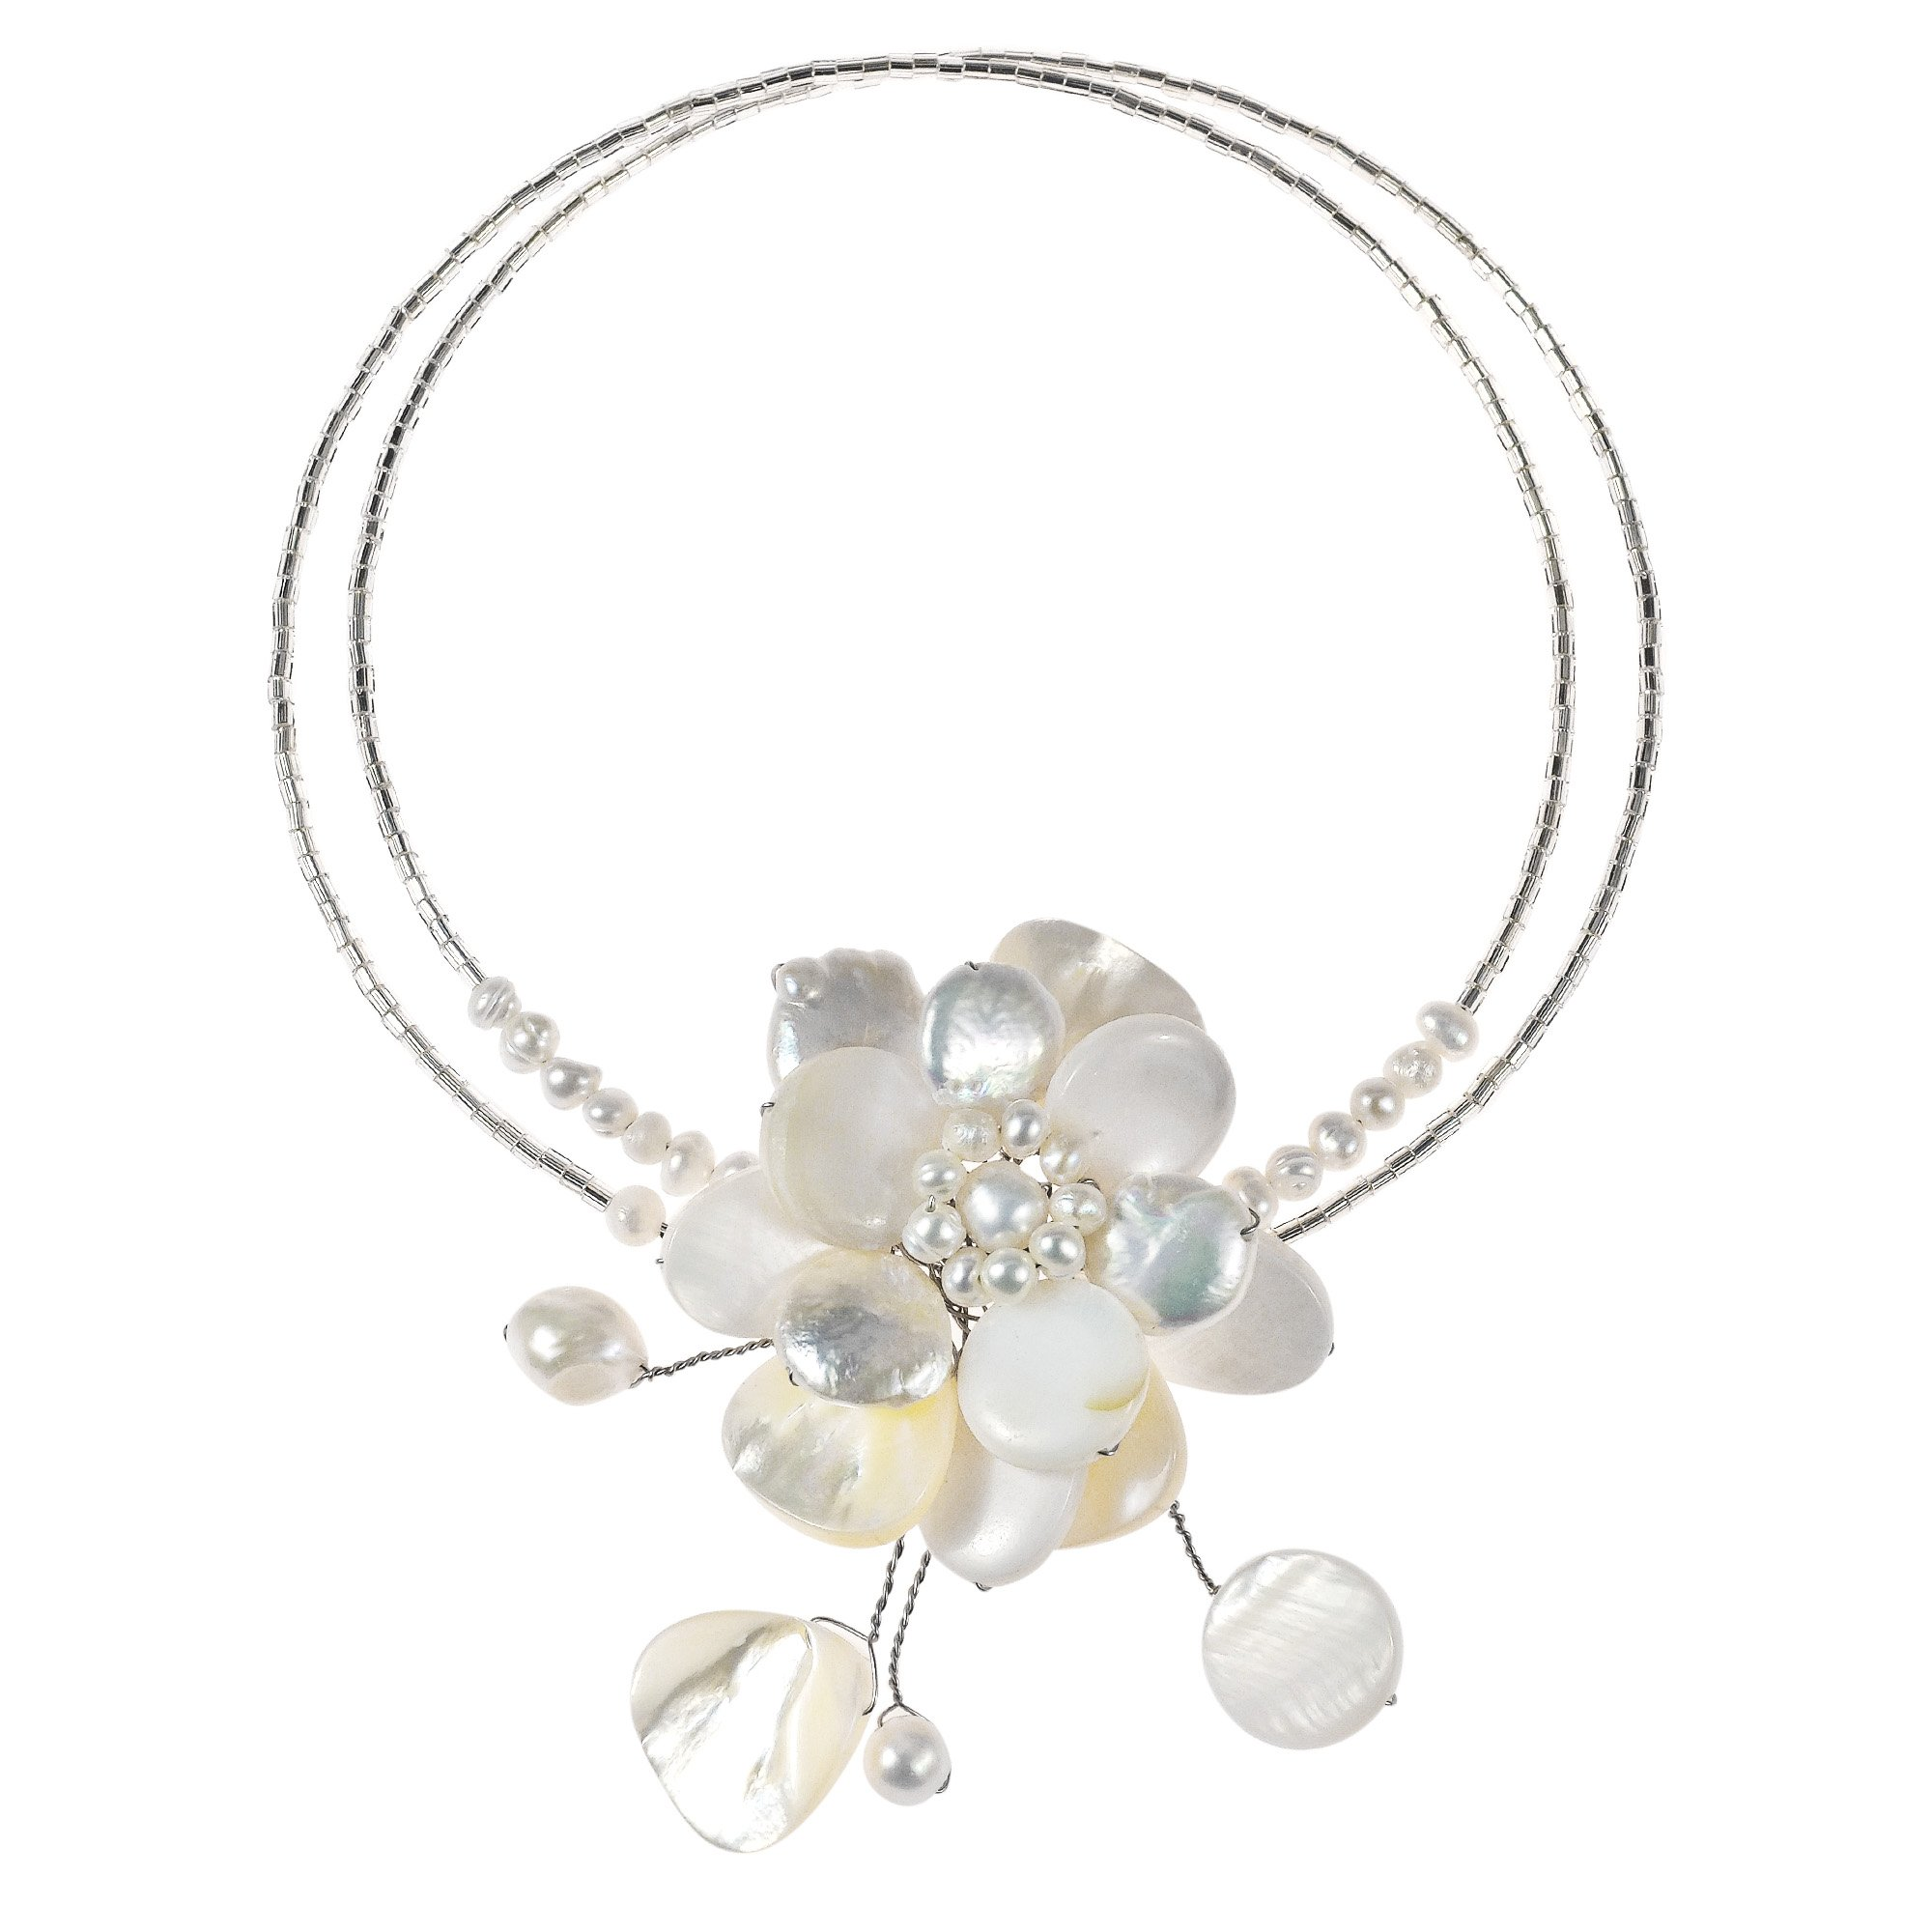 White Mother of Pearl & Cultured Freshwater Pearl Floral Attention Choker Necklace